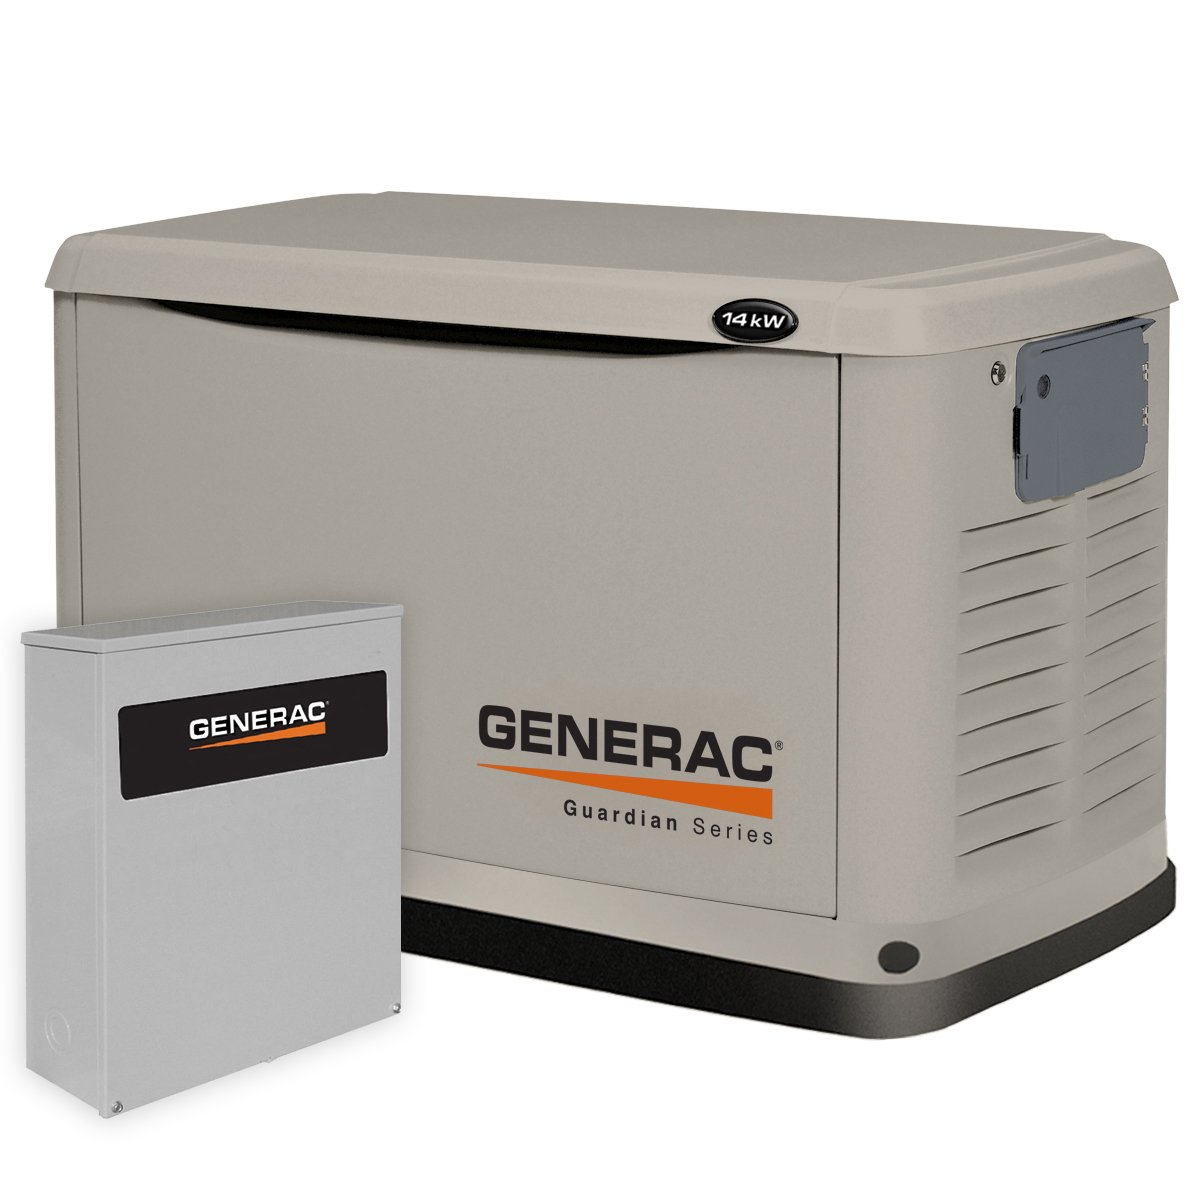 Generac 6241 14,000 Watt Air-Cooled Steel Enclosure Gas Powered Standby Generator with 200-Amp Smart Transfer Switch